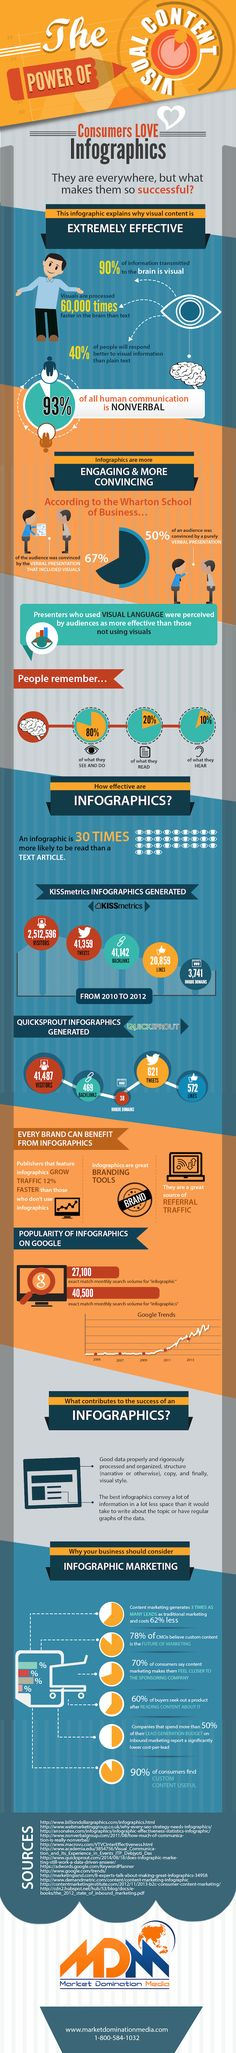 Weekly Infographic: Why Infographics Deliver Results? - Search, Social News PageTraffic Buzz